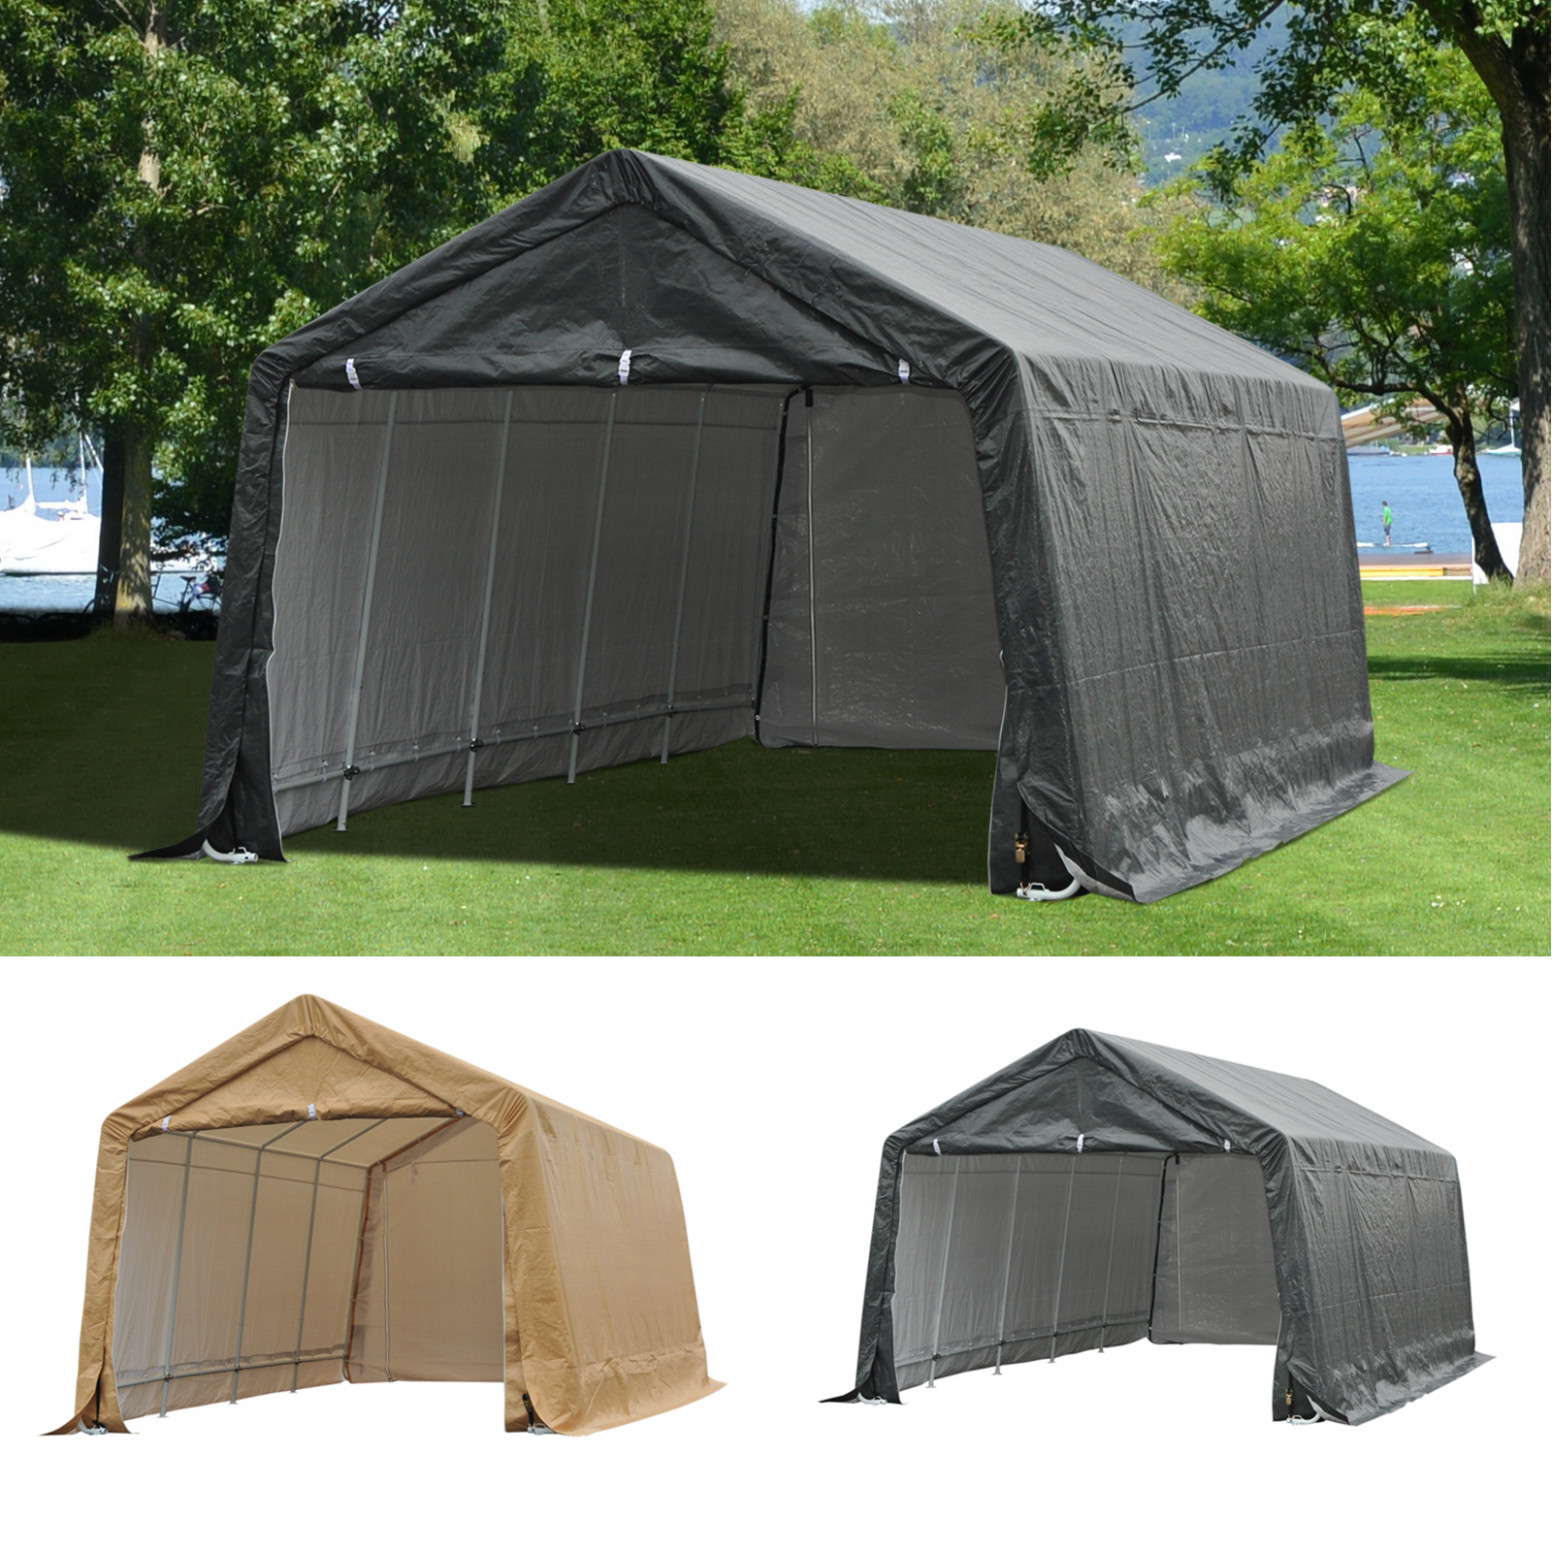 Details About Patio Large Garage Outdoor Carport Shelter Canopy Tent Sidewall Carports Parking Coupon